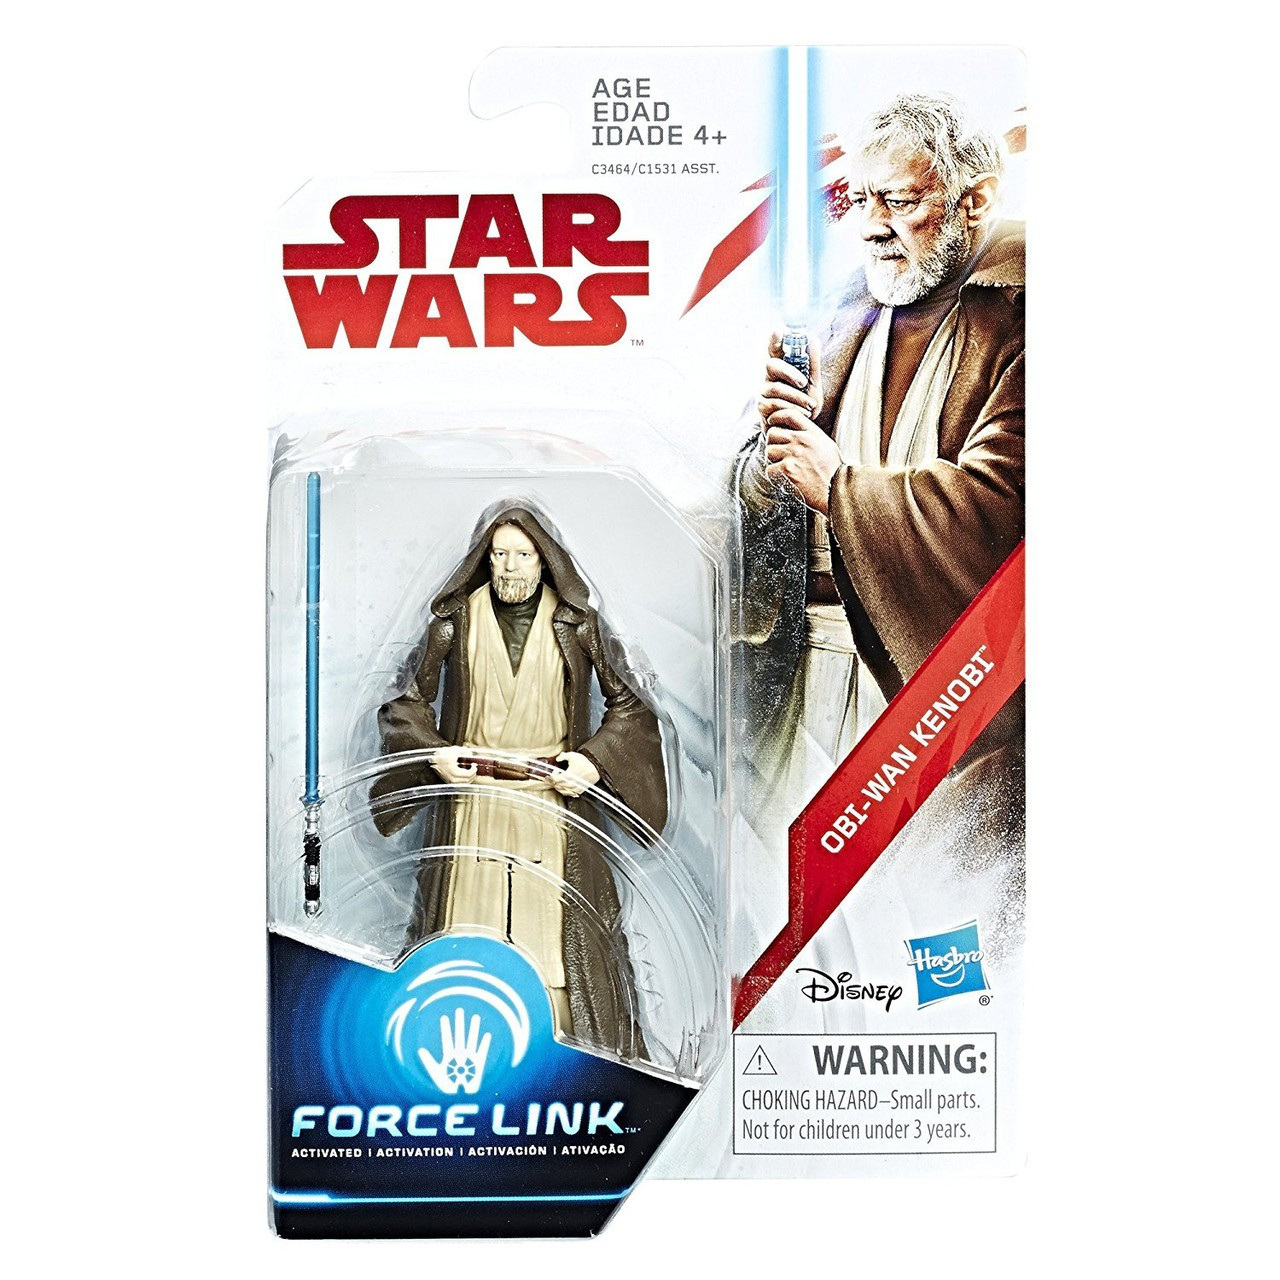 Star Wars A New Hope Force Link Teal Series Wave 2 SWU Obi Wan Kenobi Action Figure Hasbro Toys